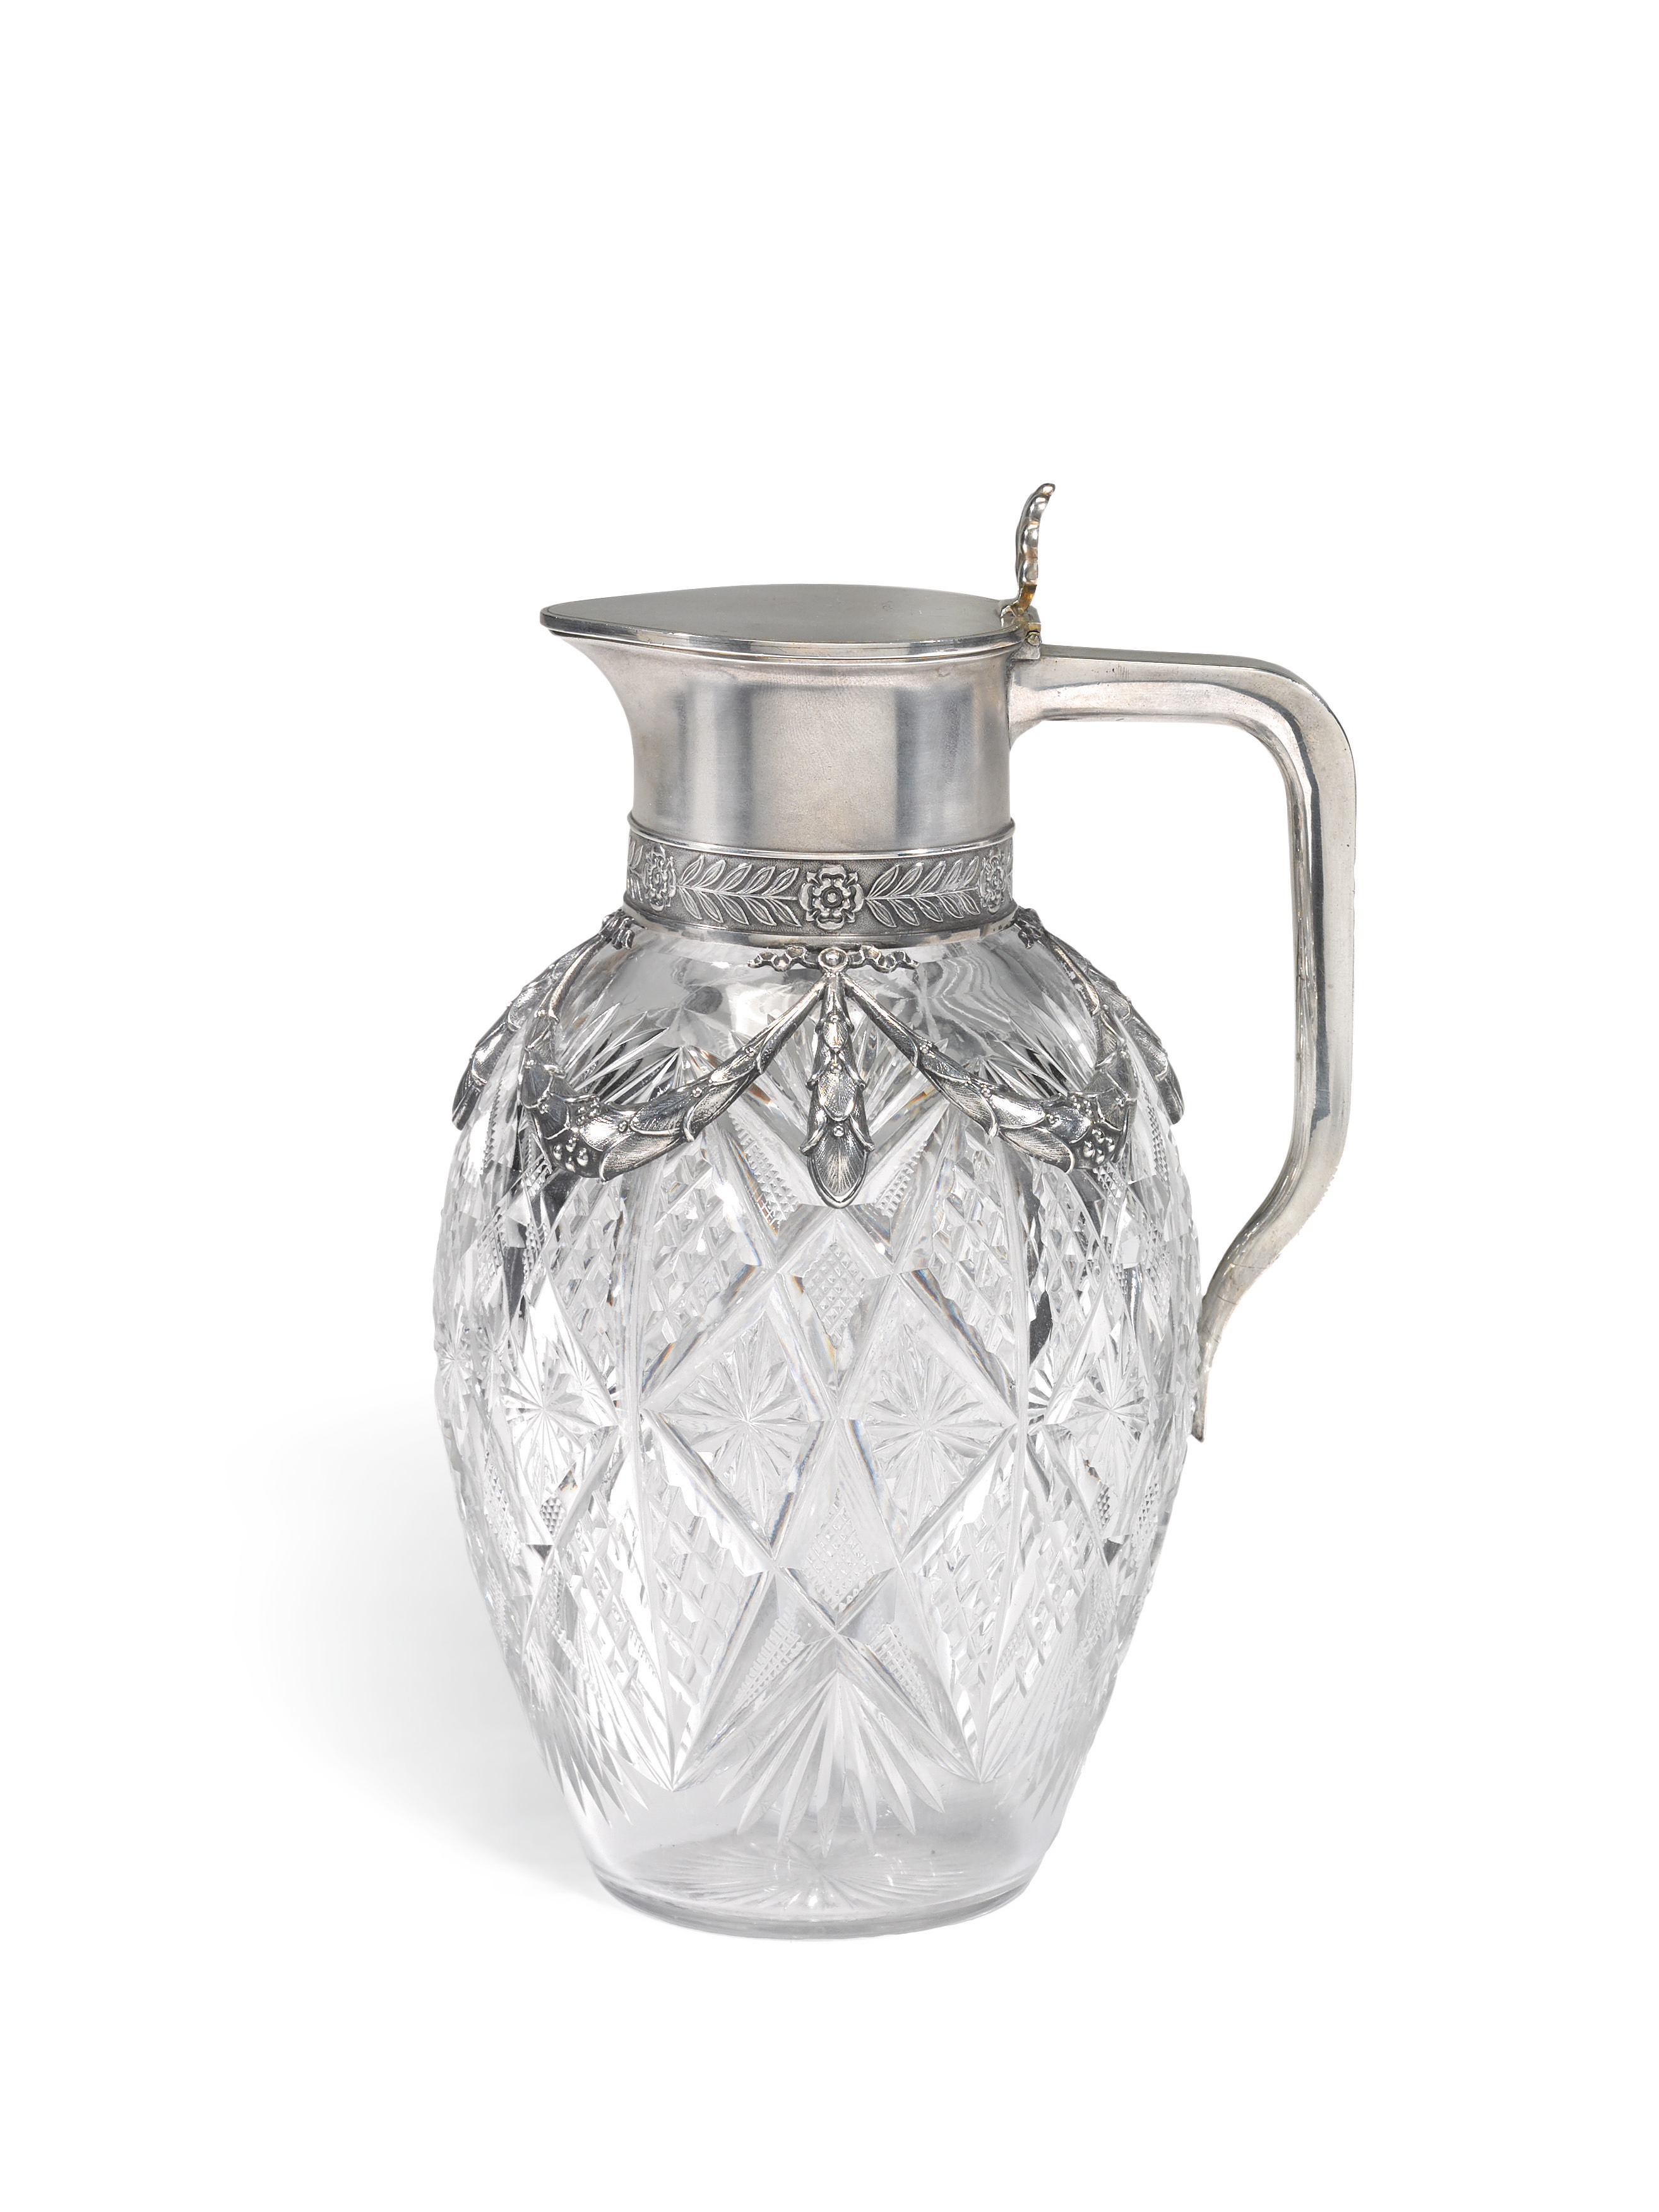 View full screen - View 1 of Lot 280. A Fabergé silver-mounted cut-glass decanter, Moscow, 1908-1917.